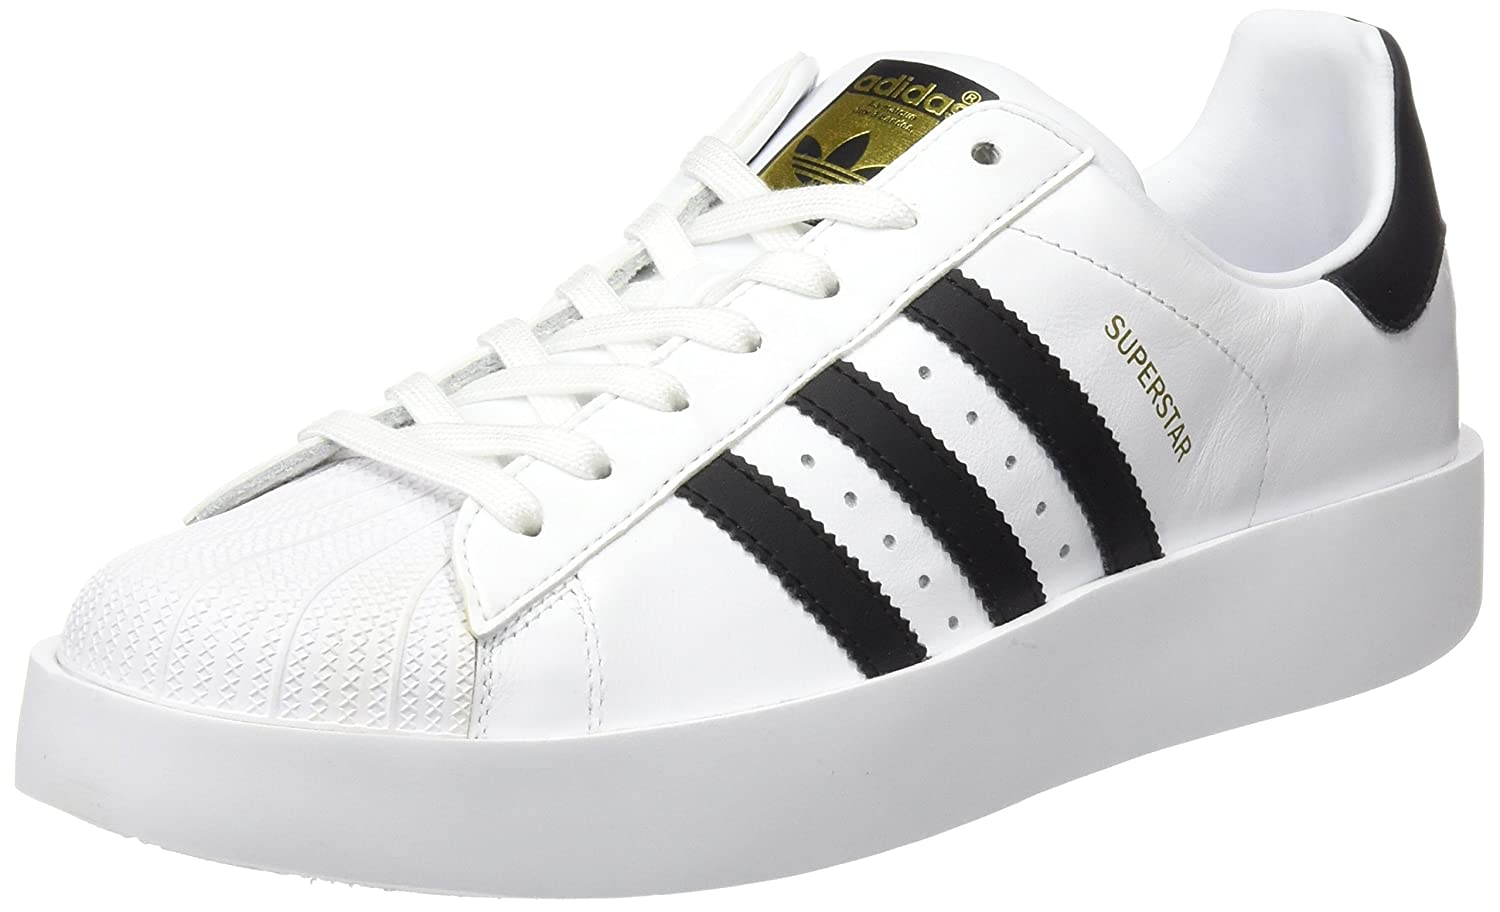 adidas Superstar Bold W Womens Trainers White Black - 9 UK